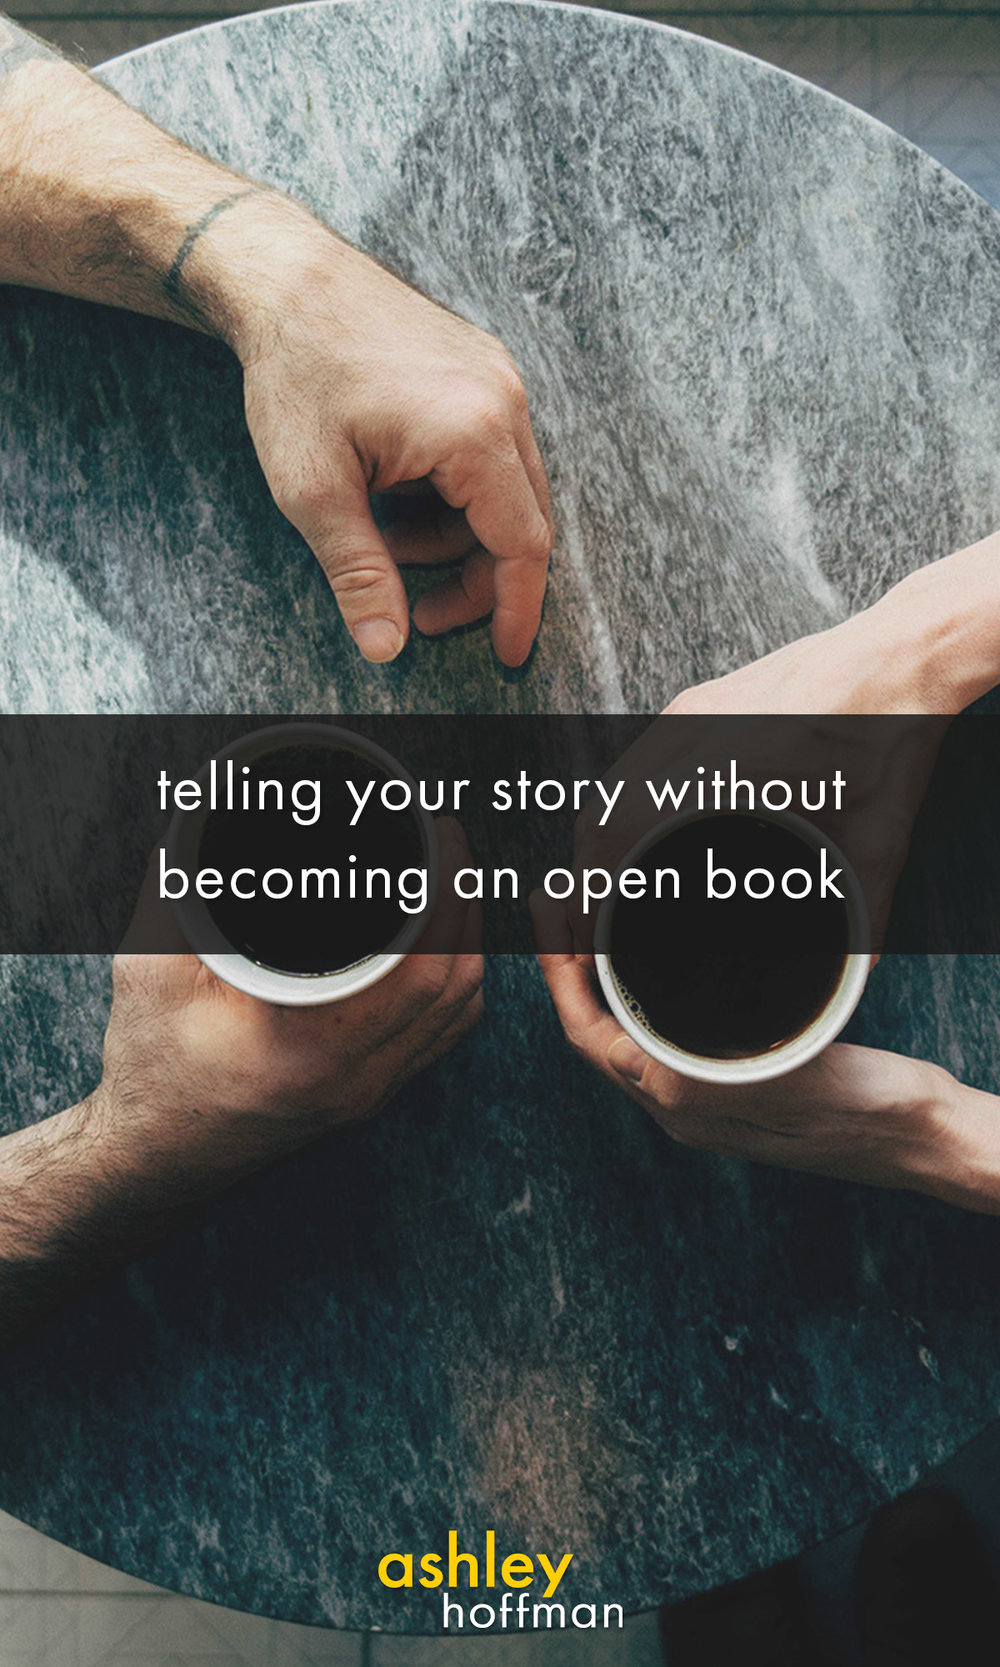 telling-your-story-without-becoming-an-open-book-pinterest.jpg